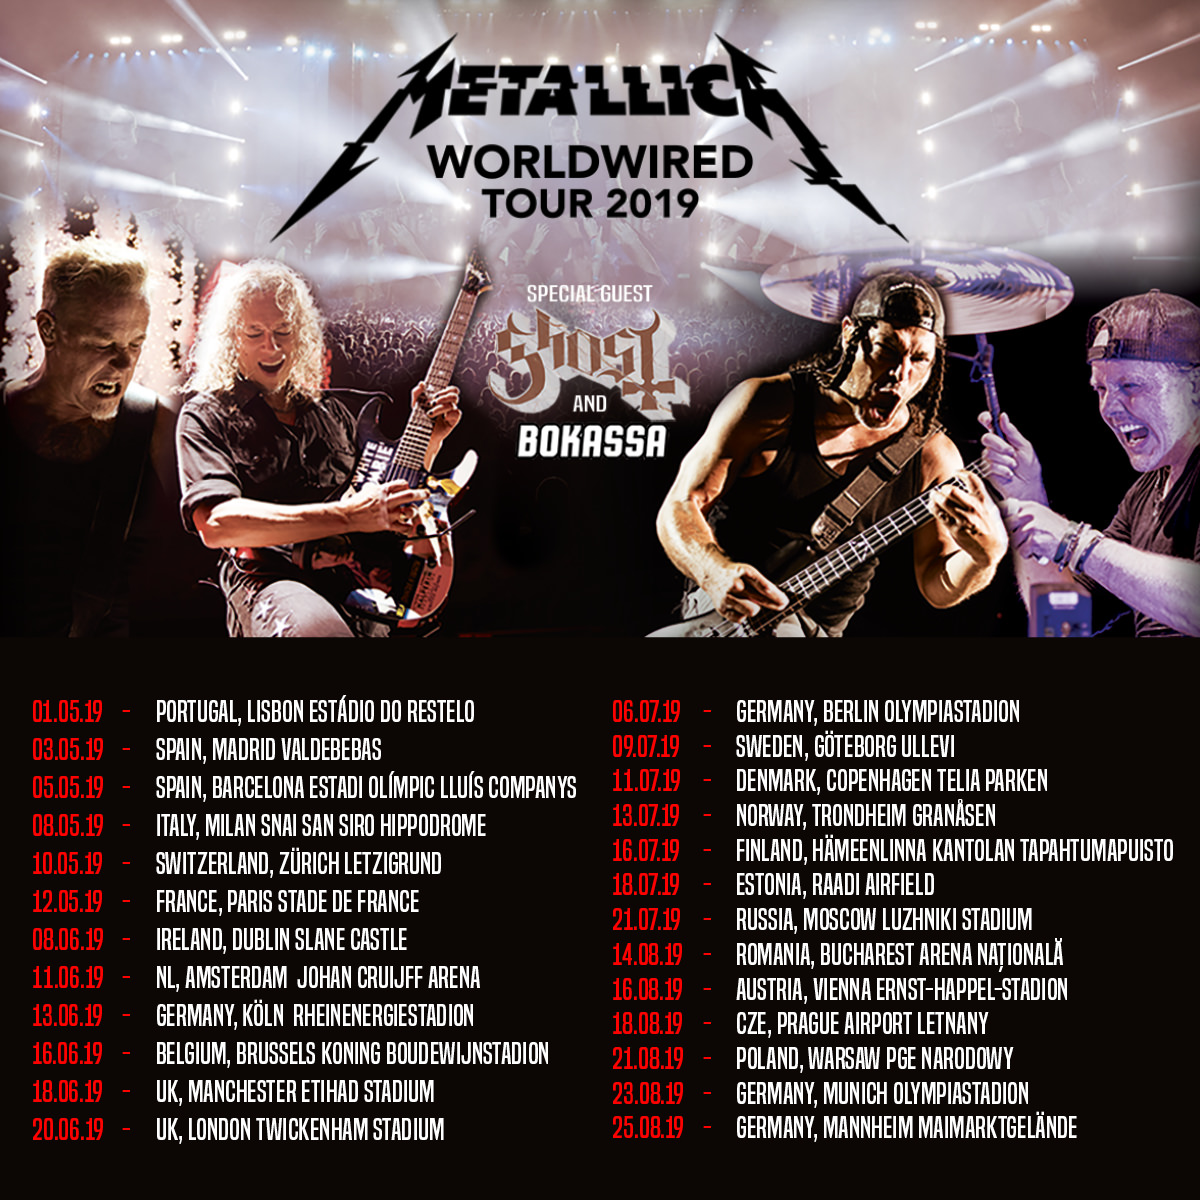 Metallica - Worldwired Tour 2020  May 10 Metallica   Tour 2019   10/05/2019   Zurich   Zurich   Switzerland